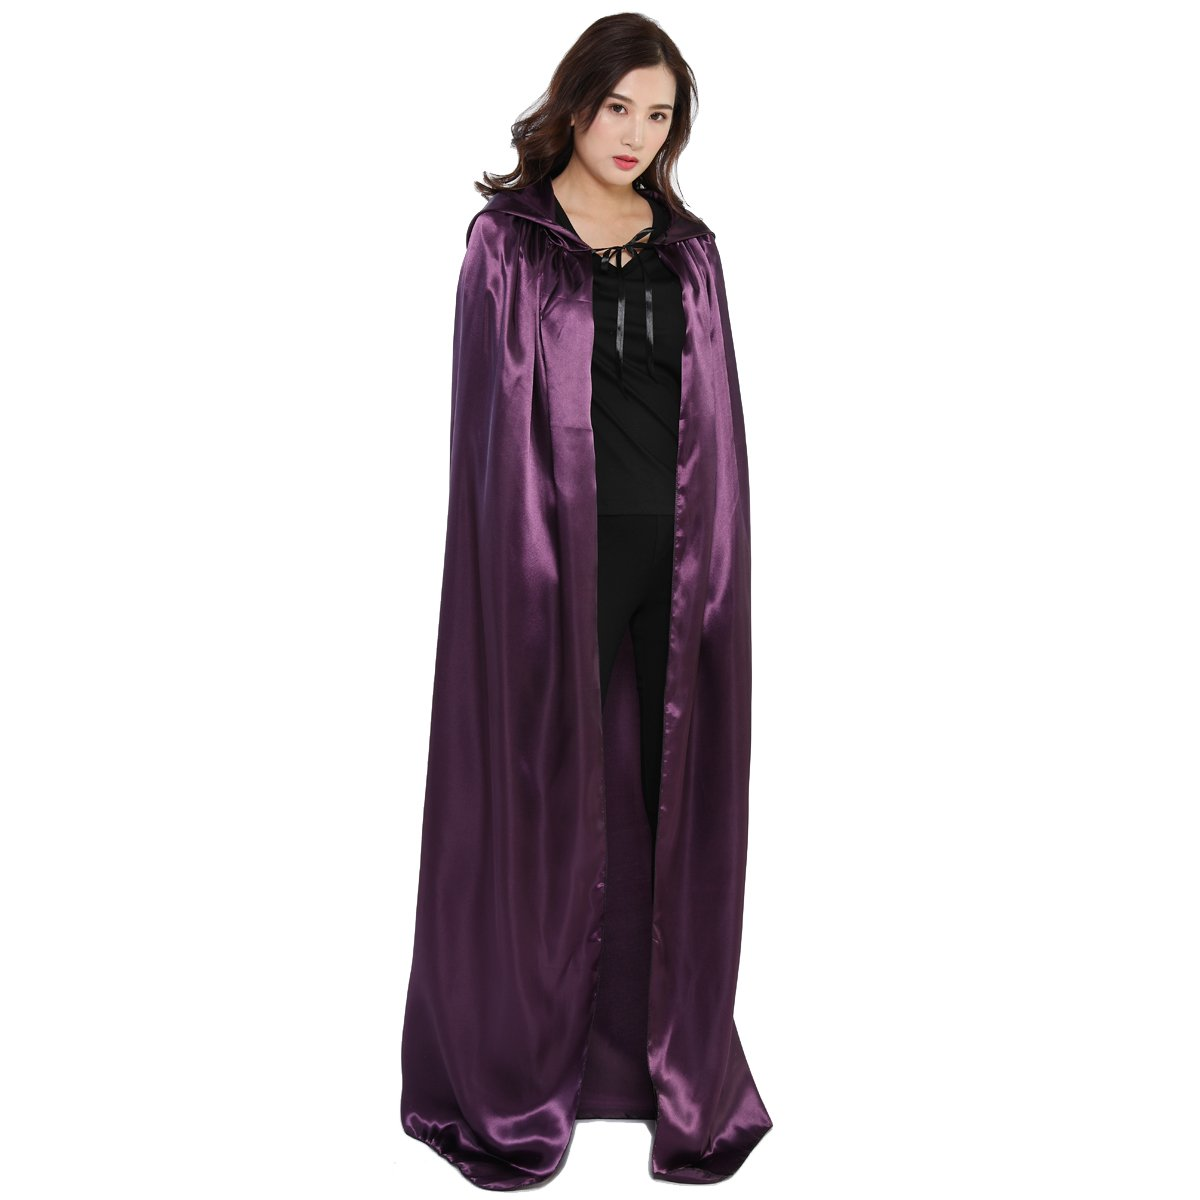 WESTLINK Cloak with Hood Costume Hooded Cape for Men Women 43-66inches